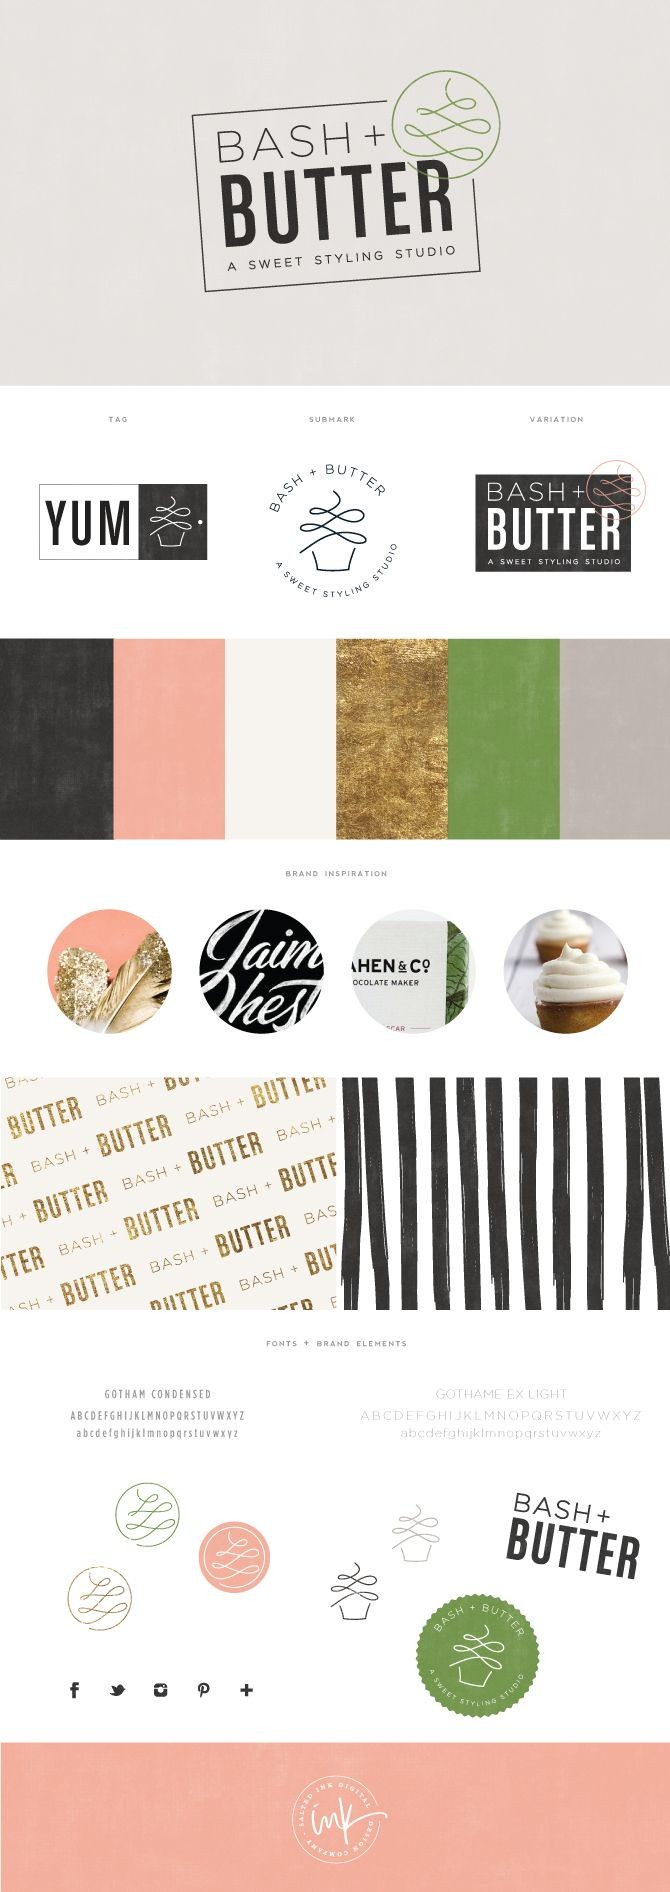 Brand Launch: Bash + Butter - Salted Ink Design Co...